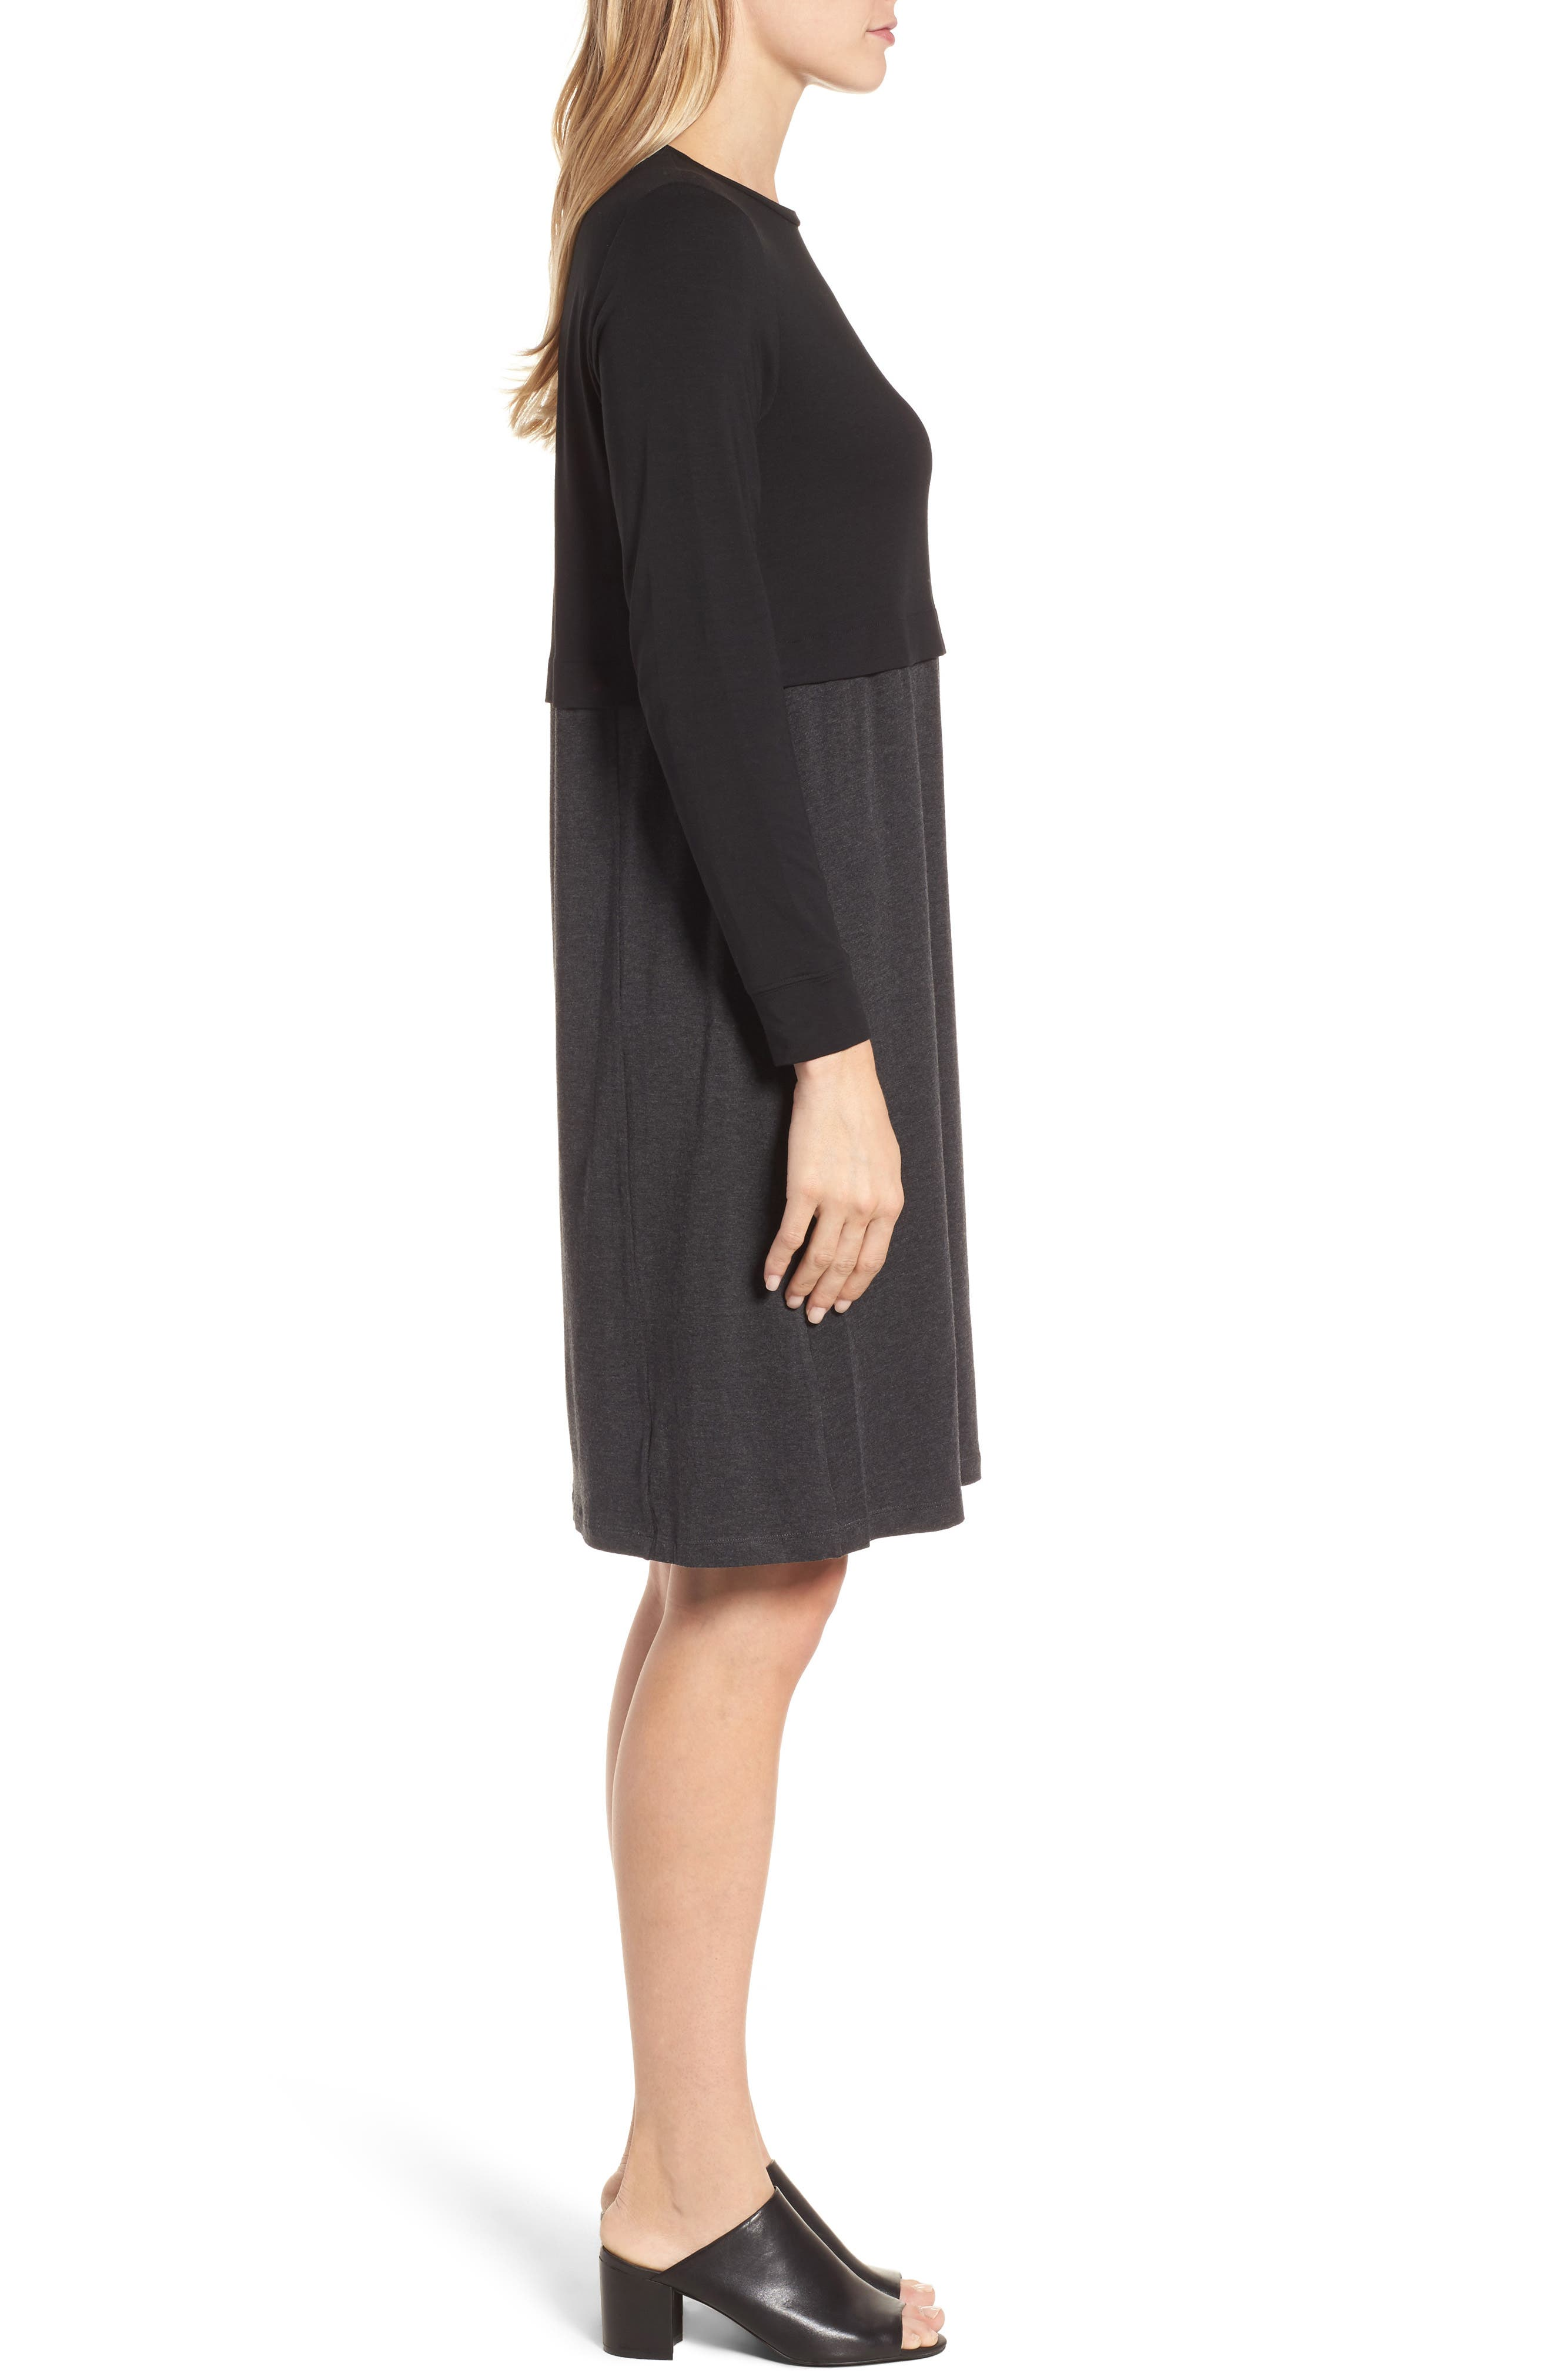 EILEEN FISHER,                             Stretch Tencel<sup>®</sup> A-Line Dress,                             Alternate thumbnail 4, color,                             010